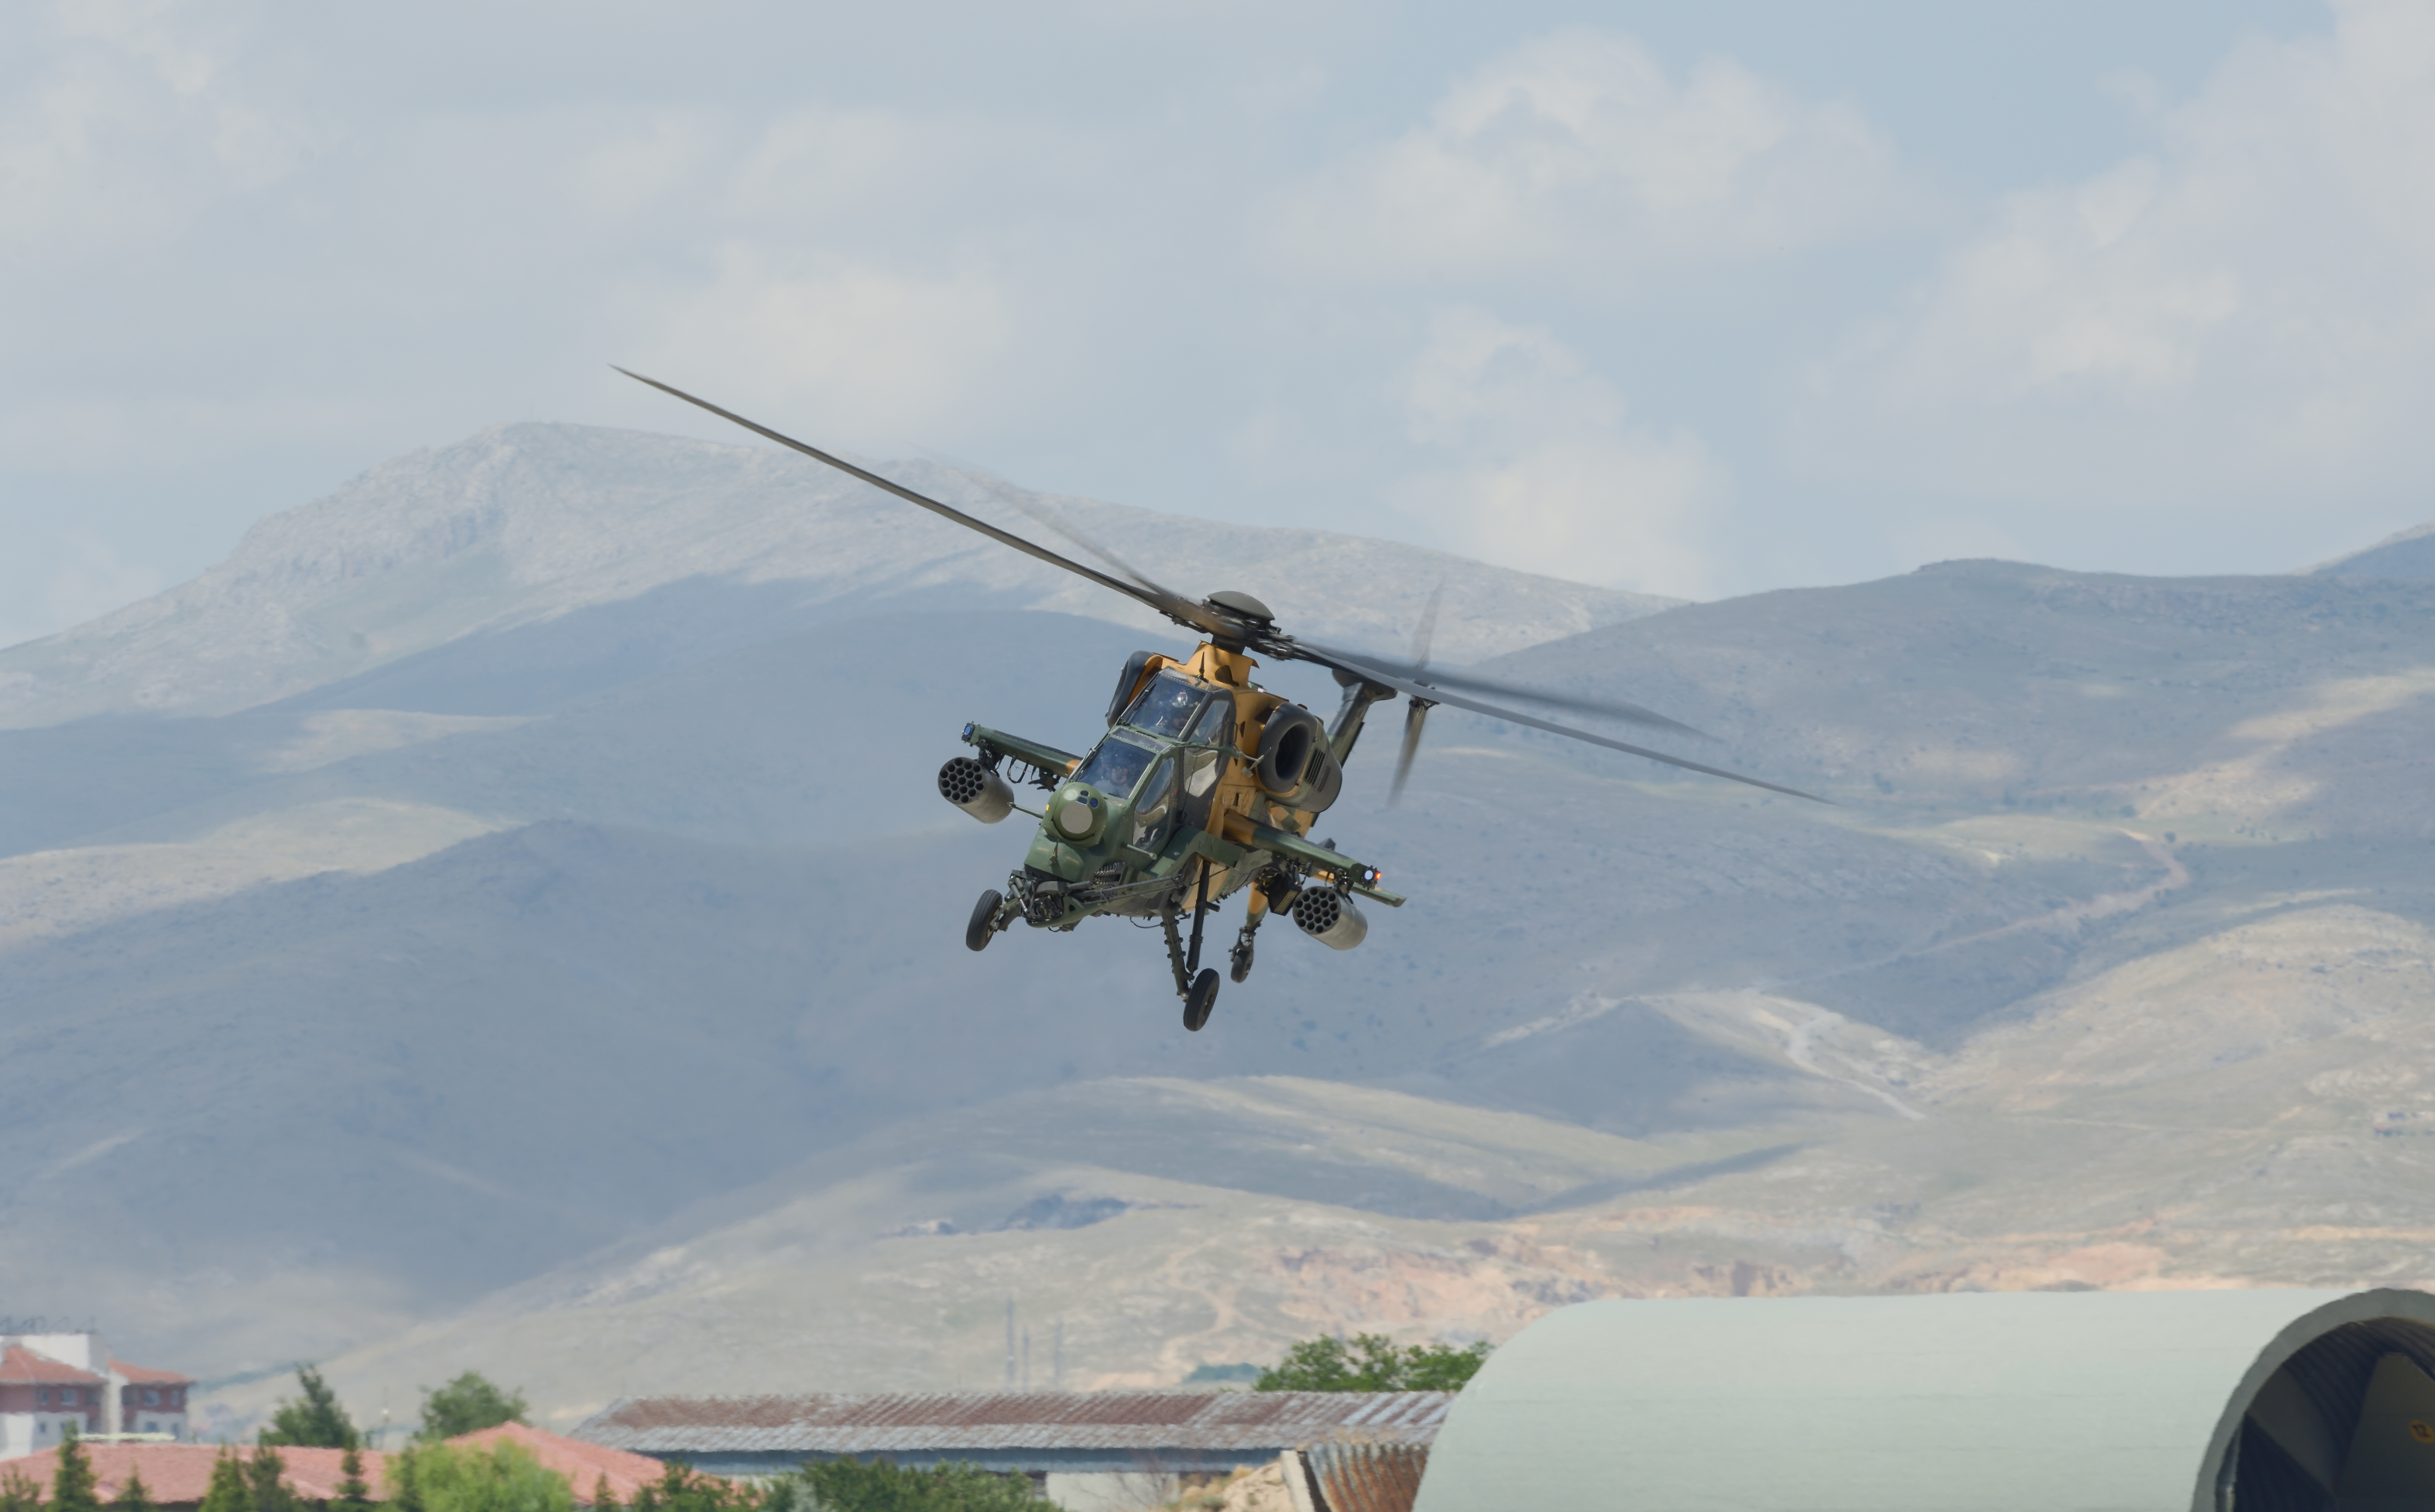 Turkish T129 attack helicopter, based on the Italian A129 Mangusta